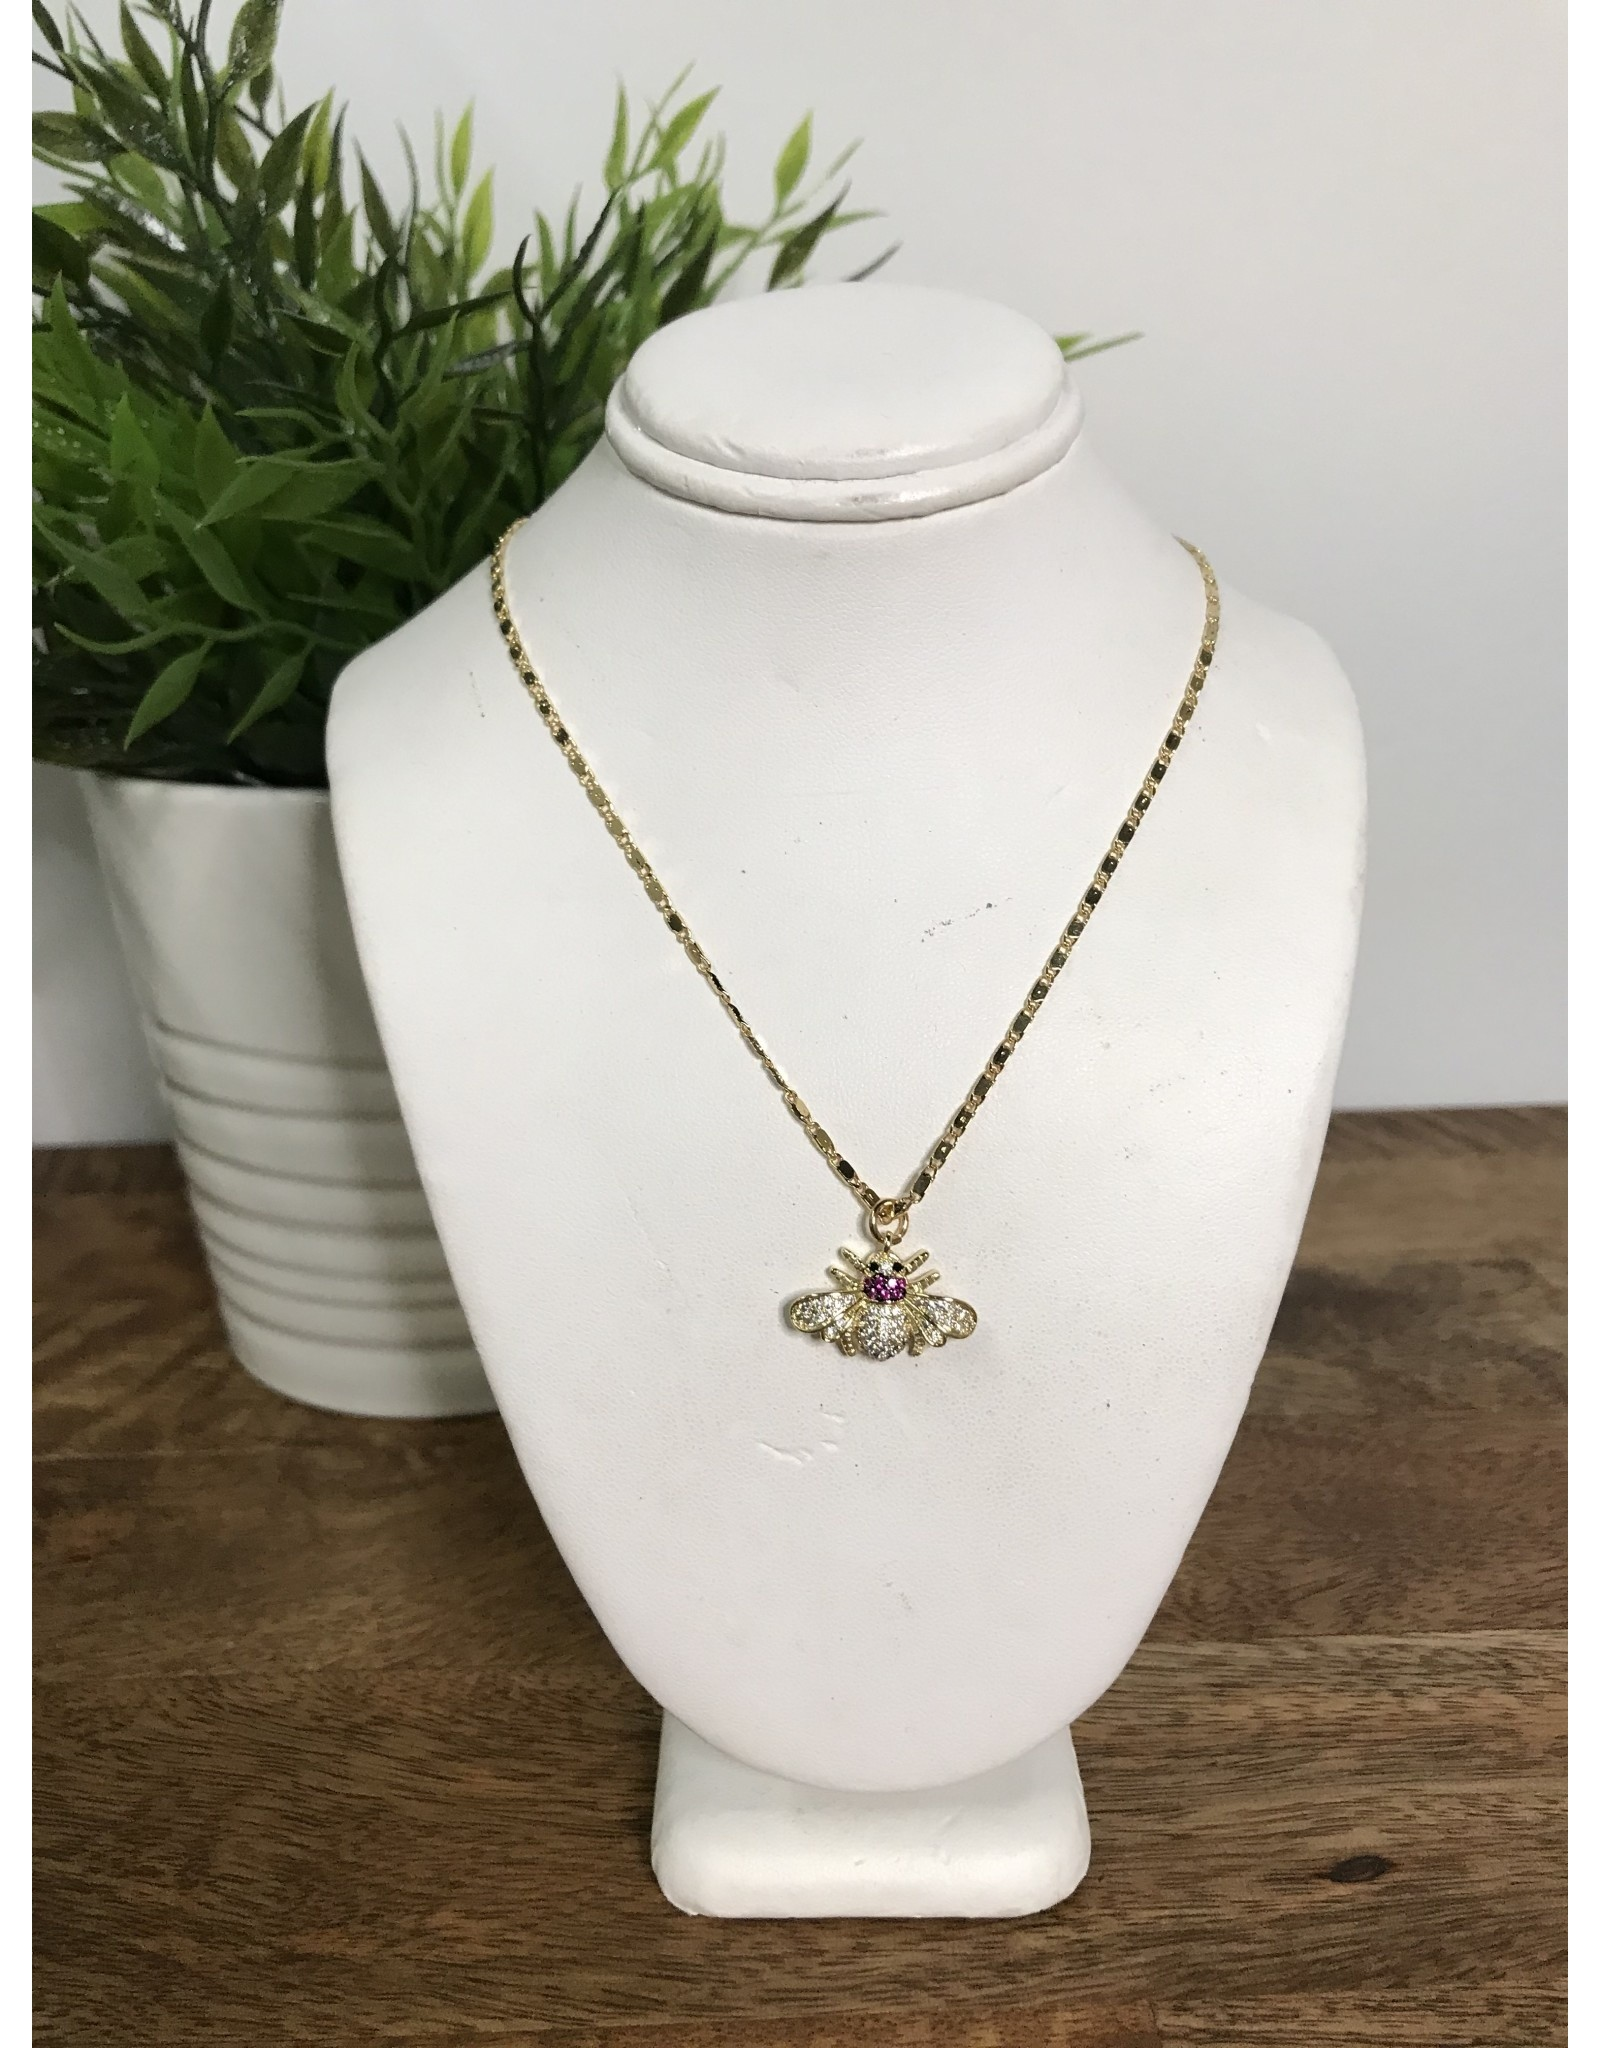 GEMELLI ALEXA BEE NECKLACE